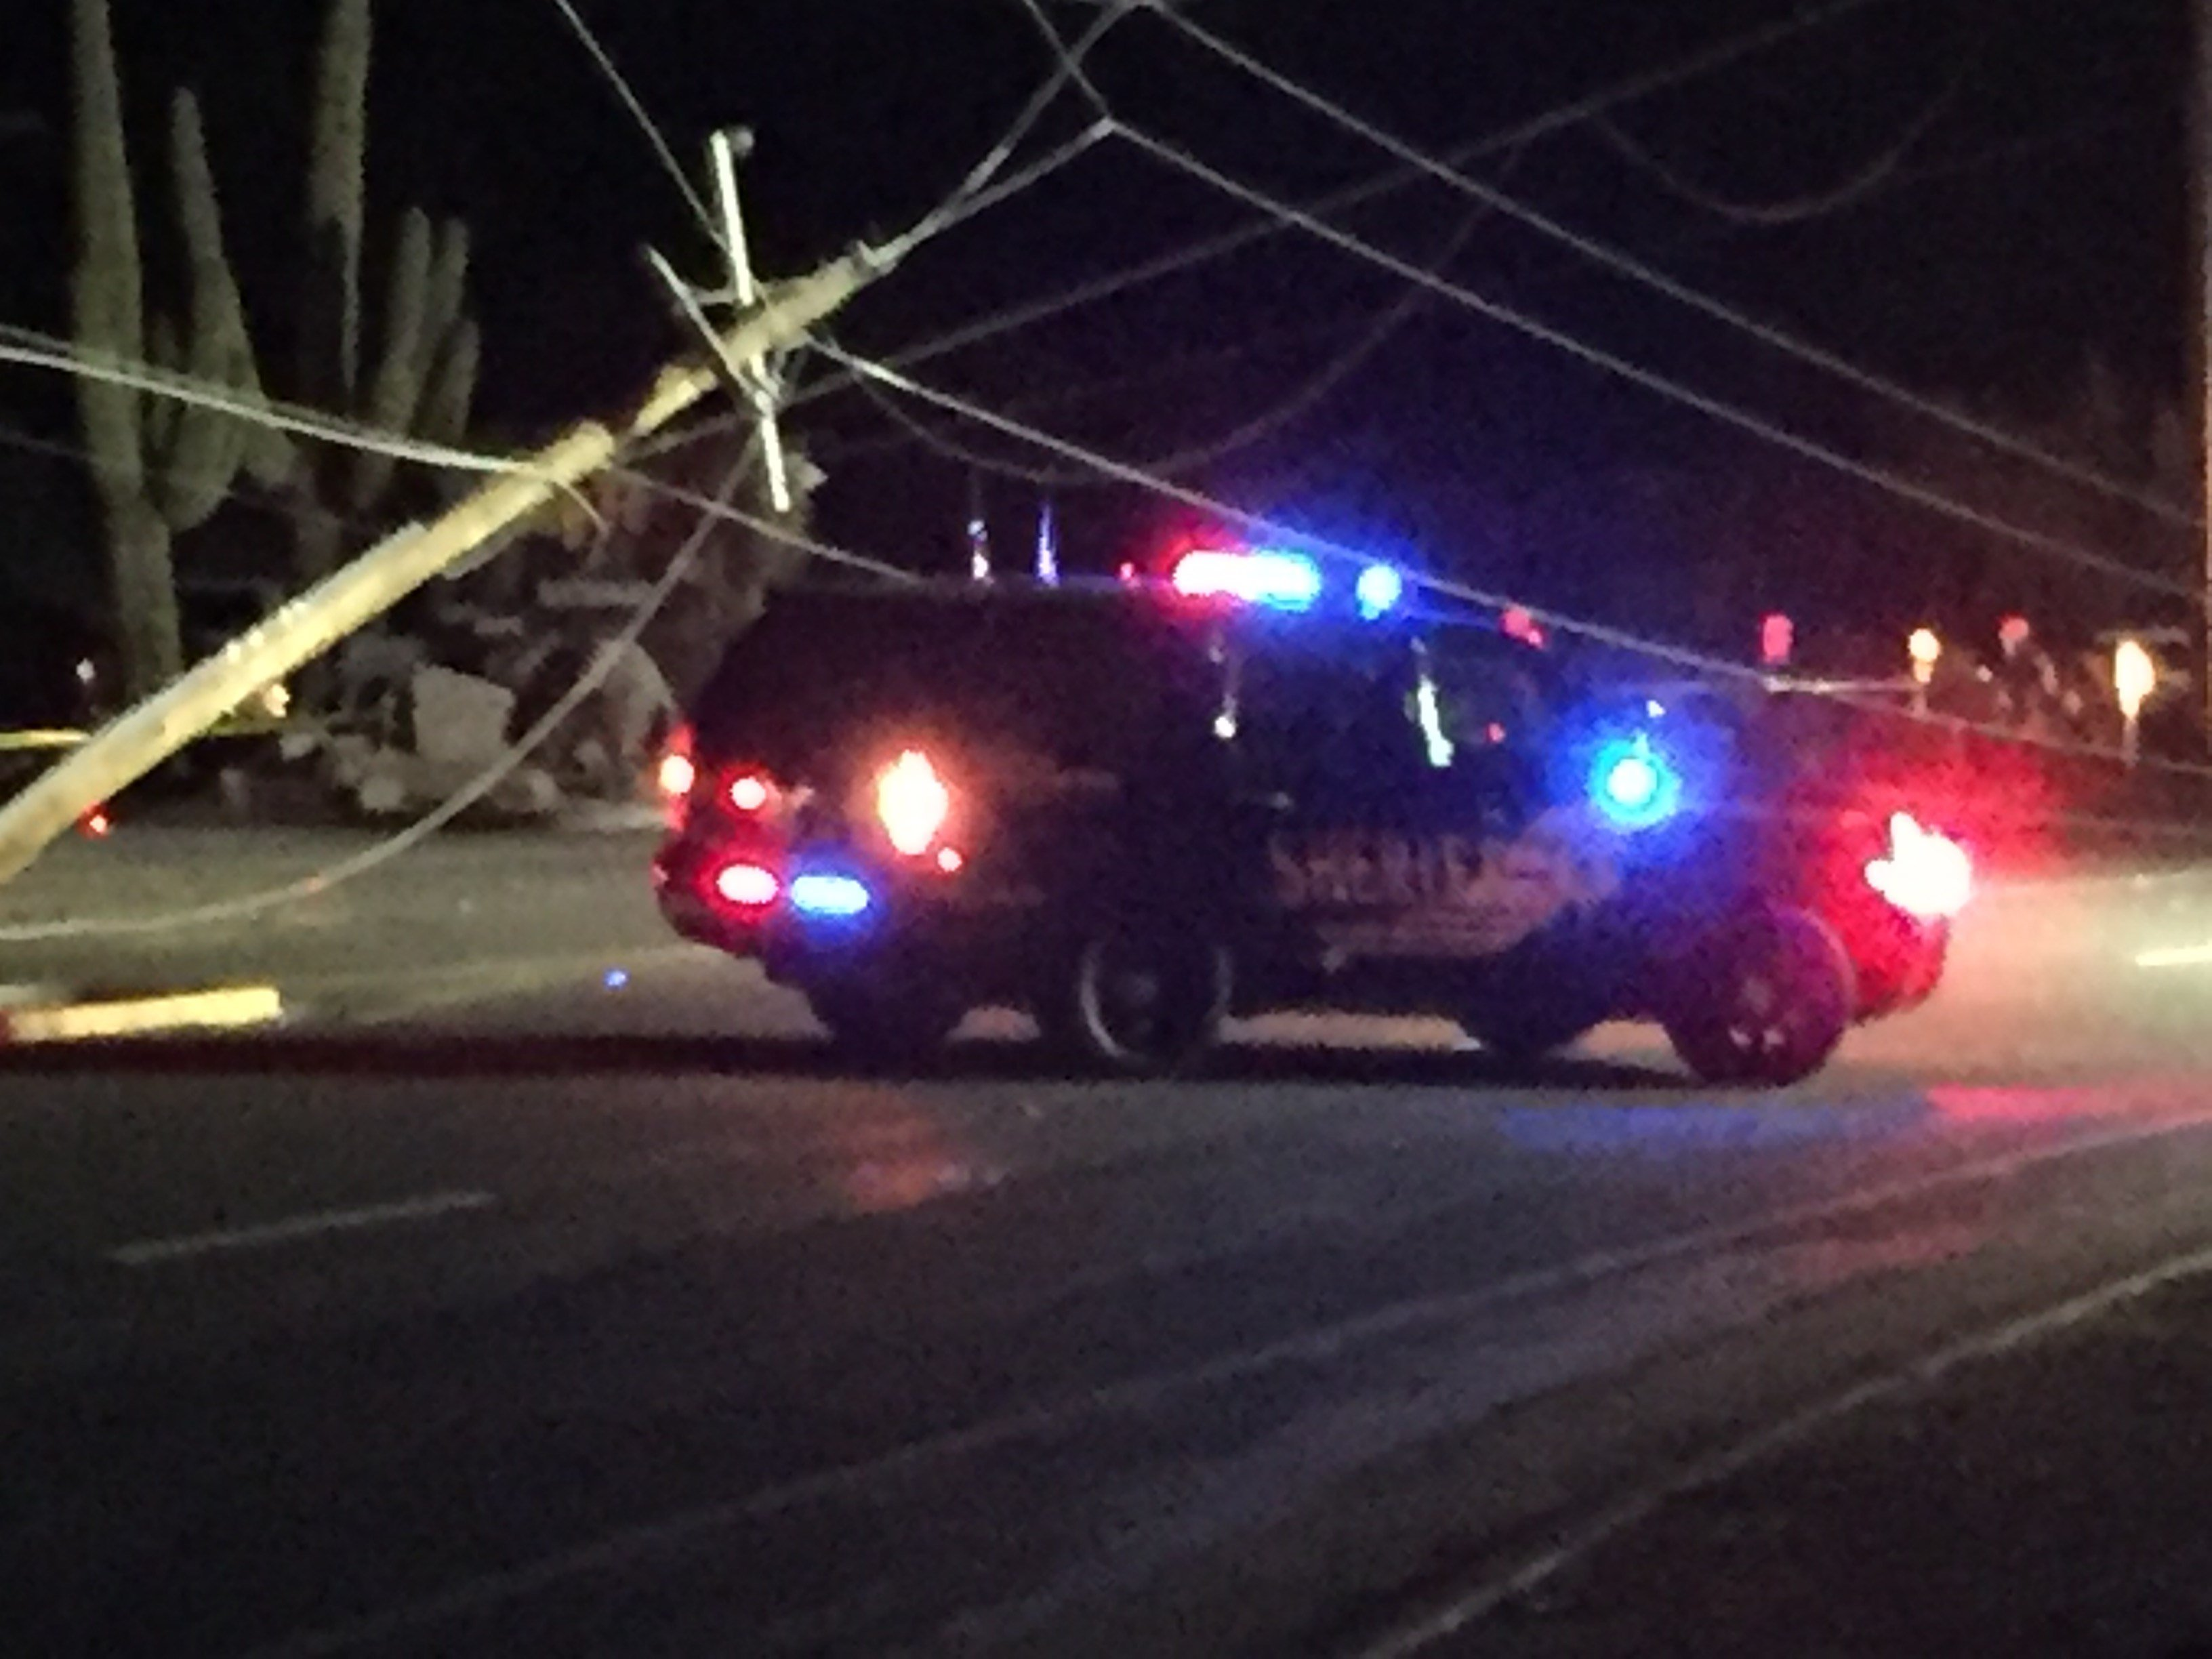 A suspected DUI driver hit a power pole in Cave Creek taking out power to the area. 25 March 2017 [Source: 3TV/CBS5]